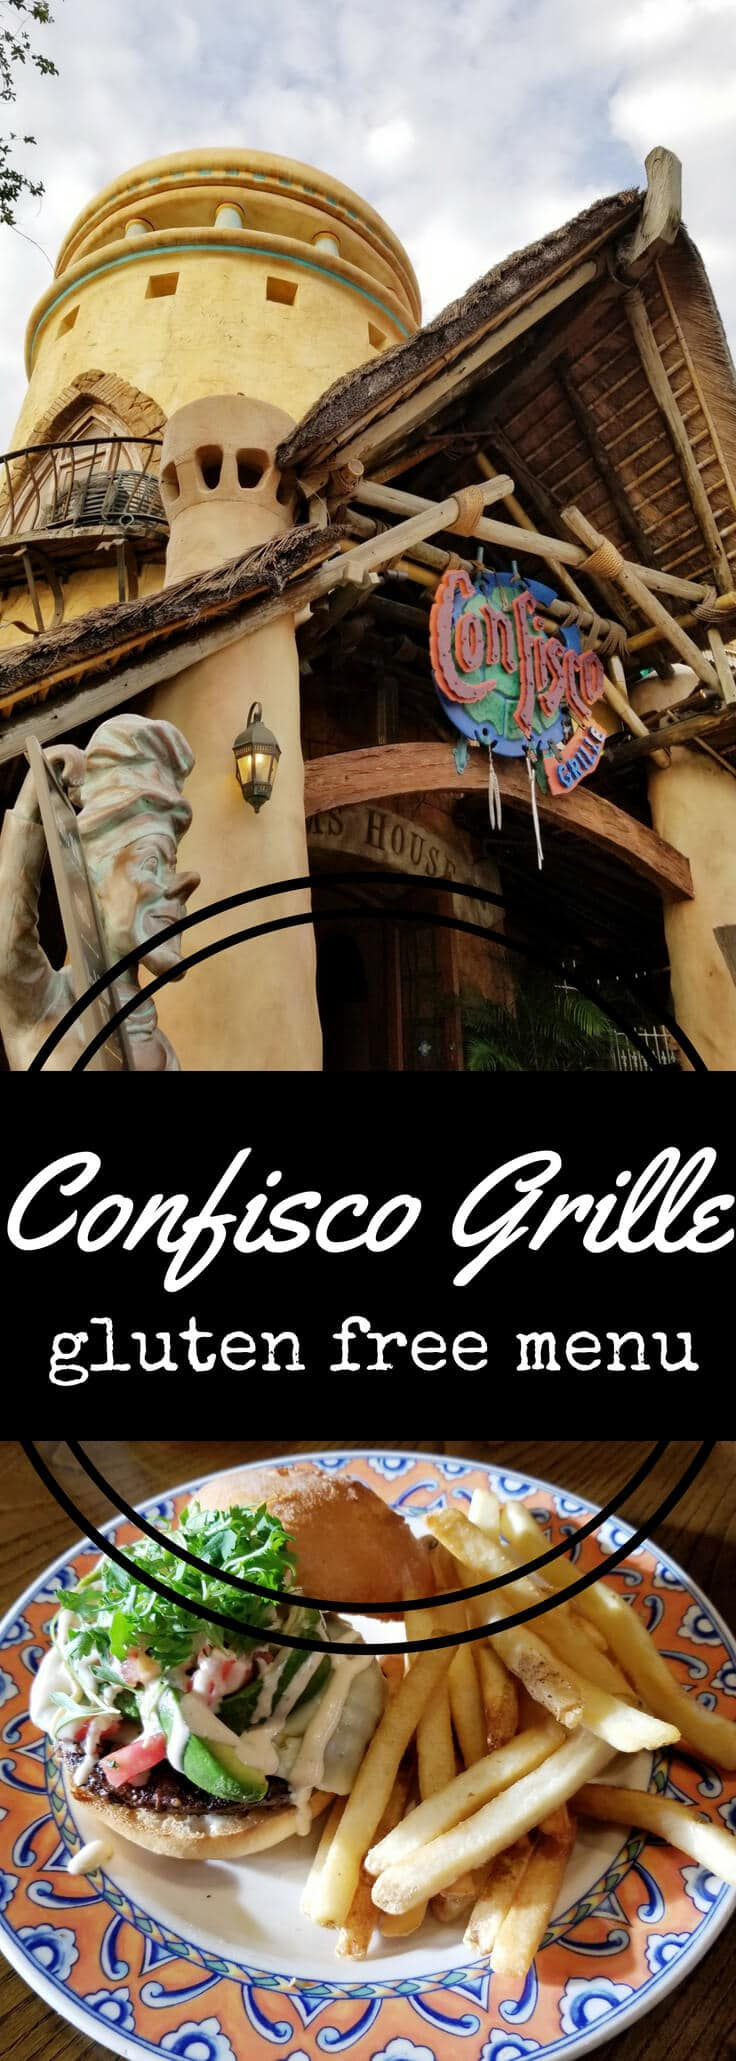 I dined gluten free like a queen at Confisco Grille in Universal's Islands of Adventure theme park.  Check out the Confisco Grille gluten free menu!